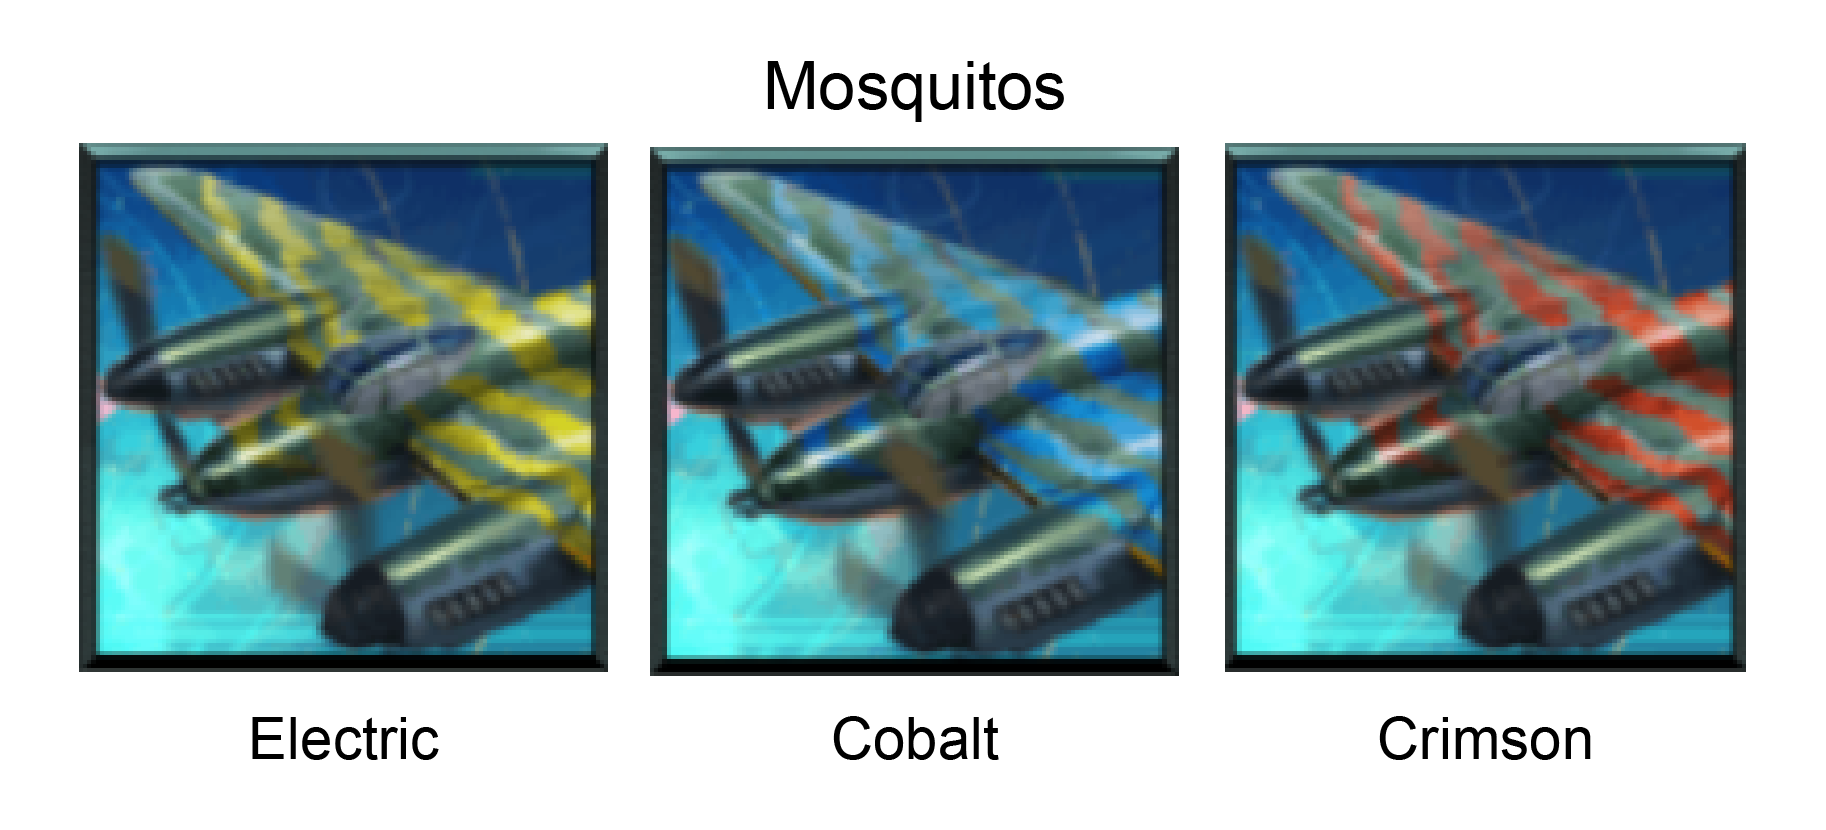 Control Point Mosquitos